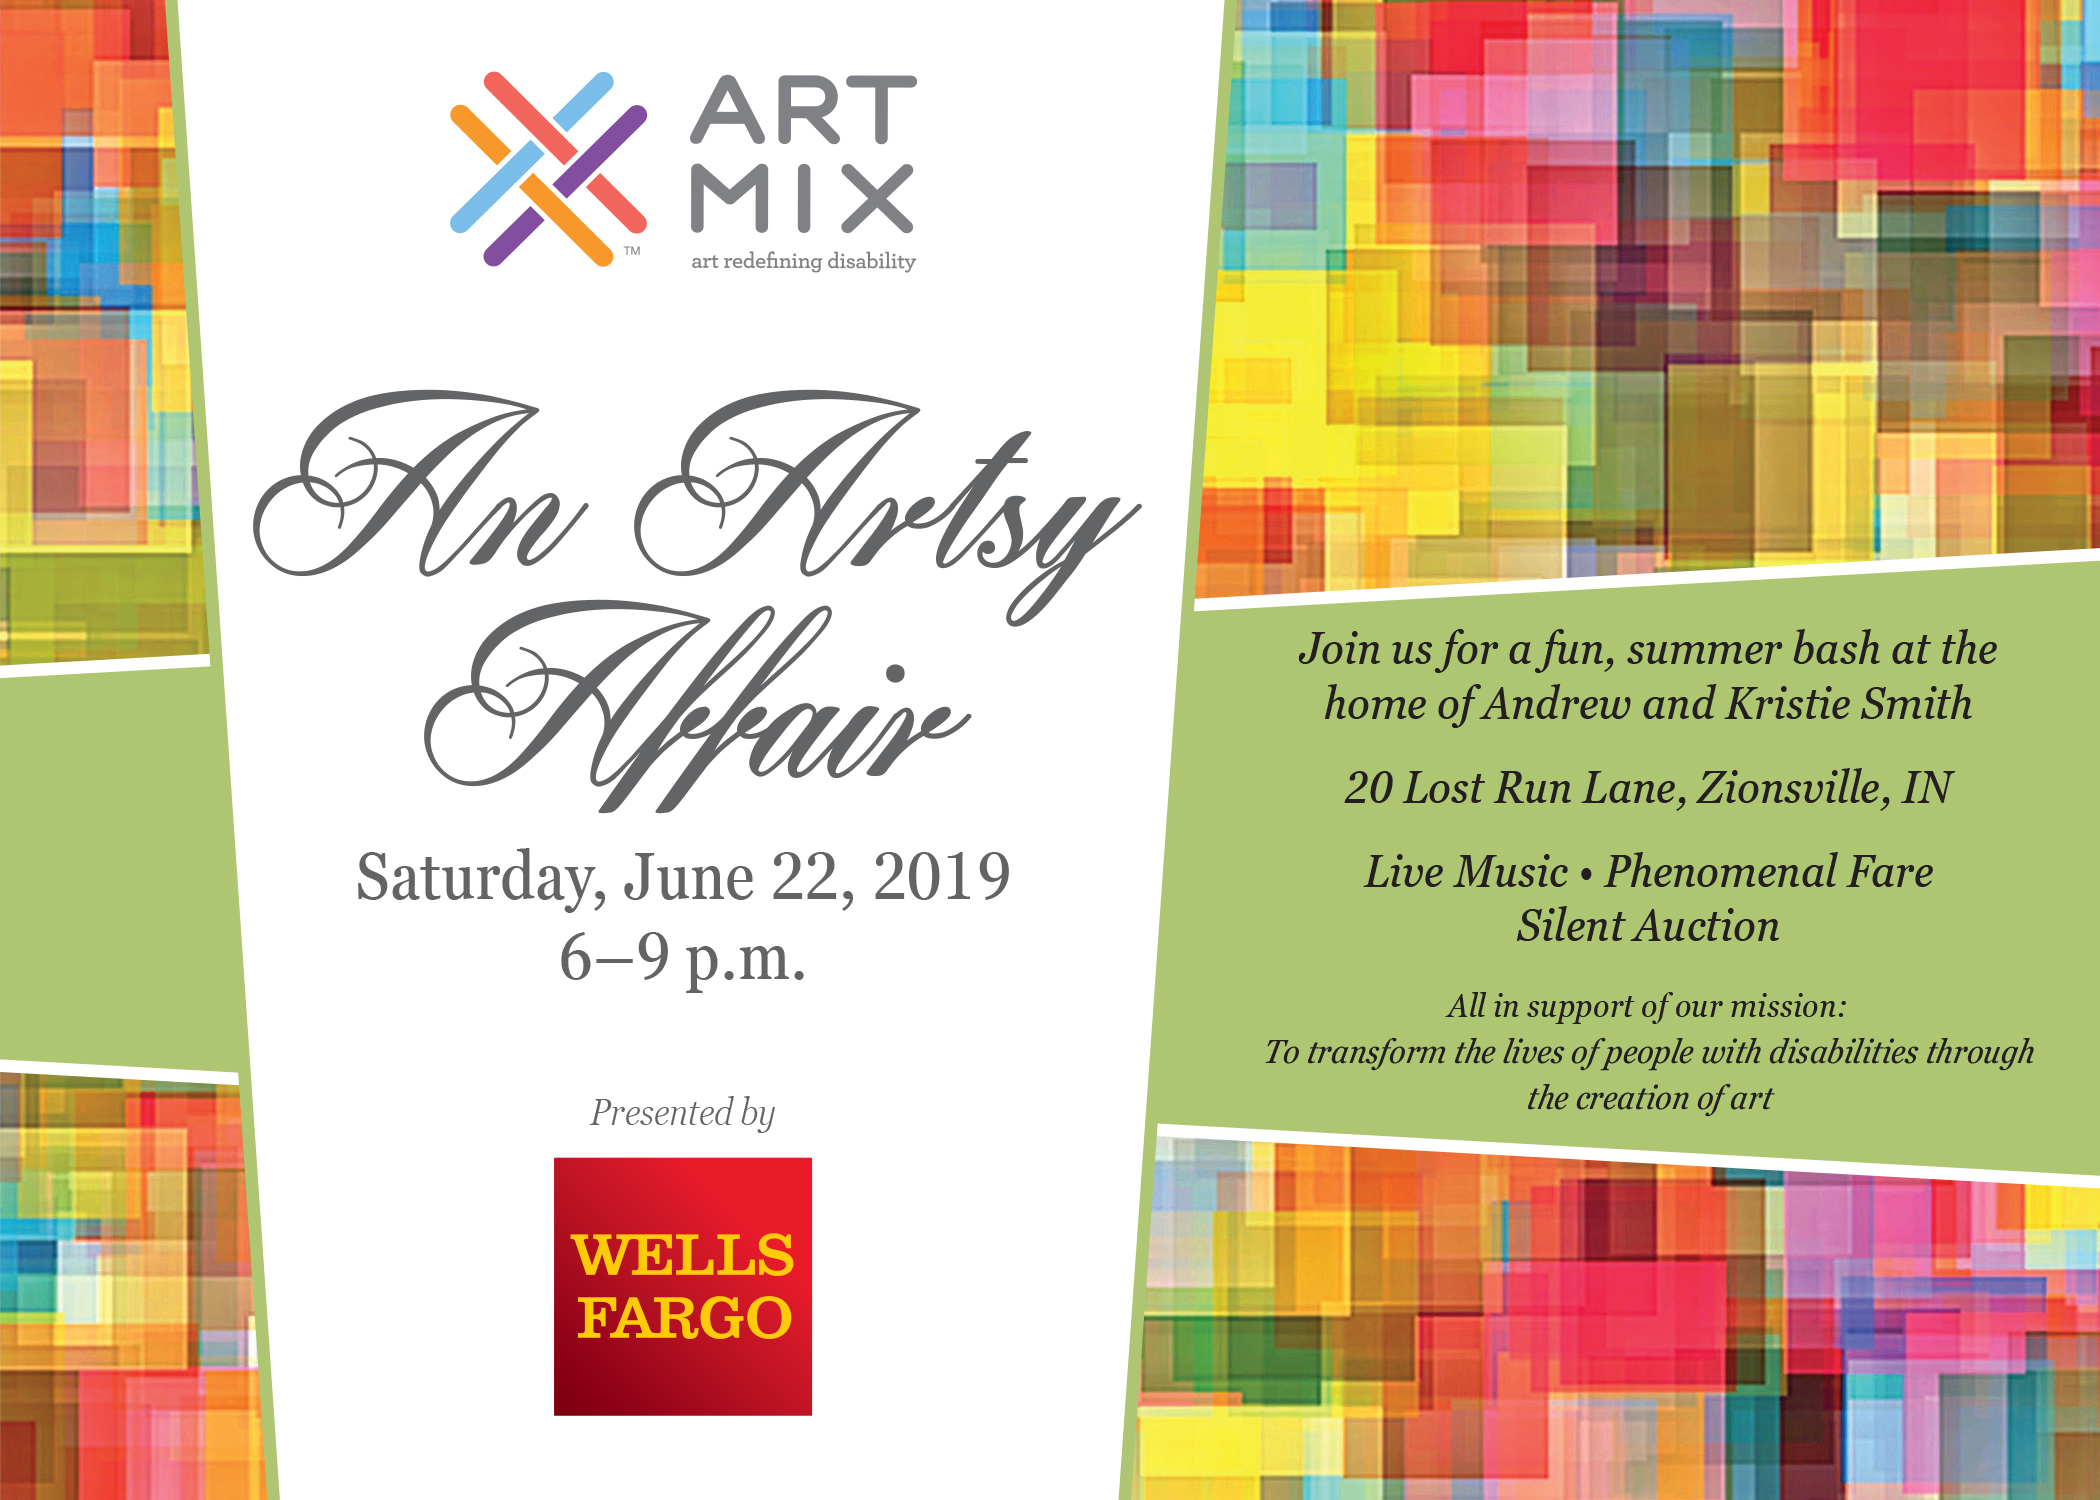 An Artsy Affair. Saturday, June 22, 2019, 6-9 p.m. Join us for a fun summer bash at the home of Andrew and Kristie Smith. 20 Lost Run Lane, Zionsville, IN. Live Music | Phenomenal Fare | Silent Auction. All in support of our mission: to transform the live